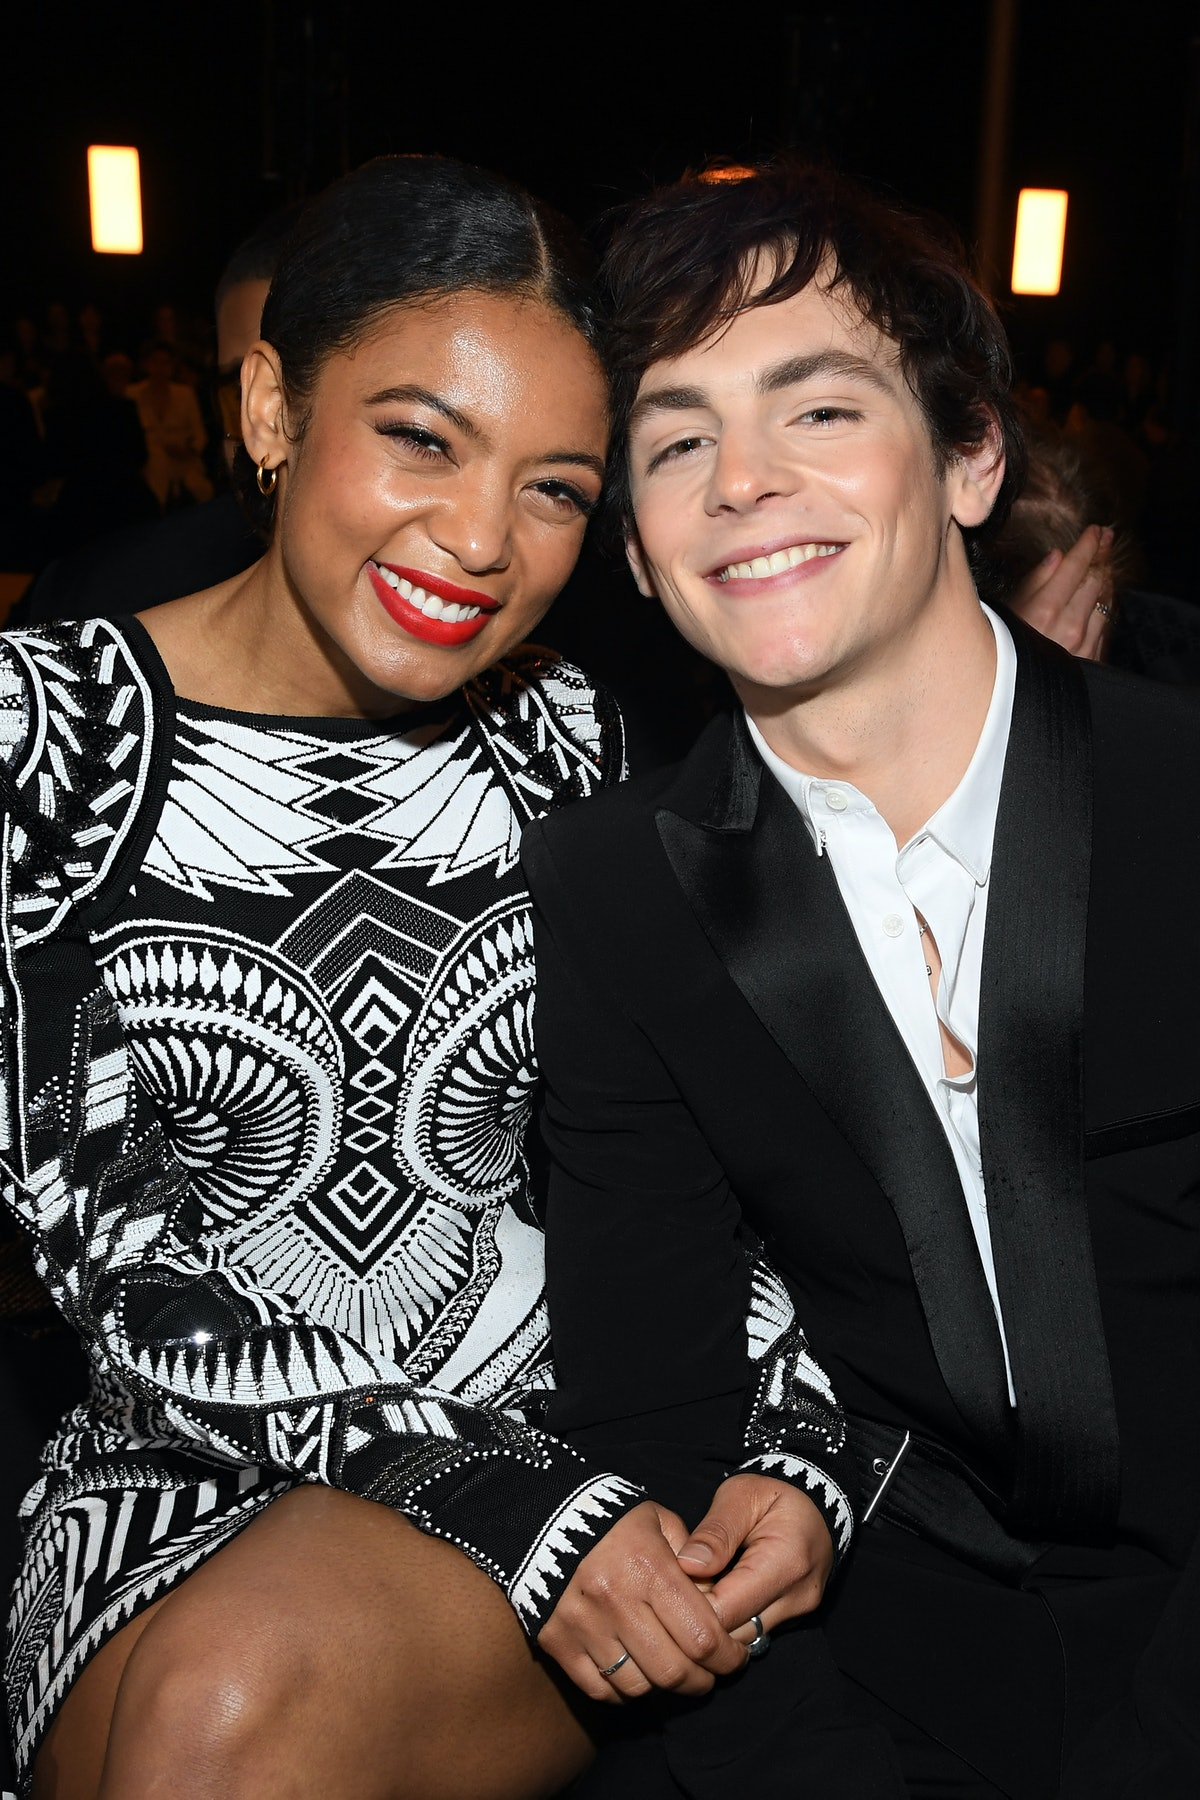 Jaz Sinclair and Ross Lynch from Chilling Adventures of Sabrina are dating